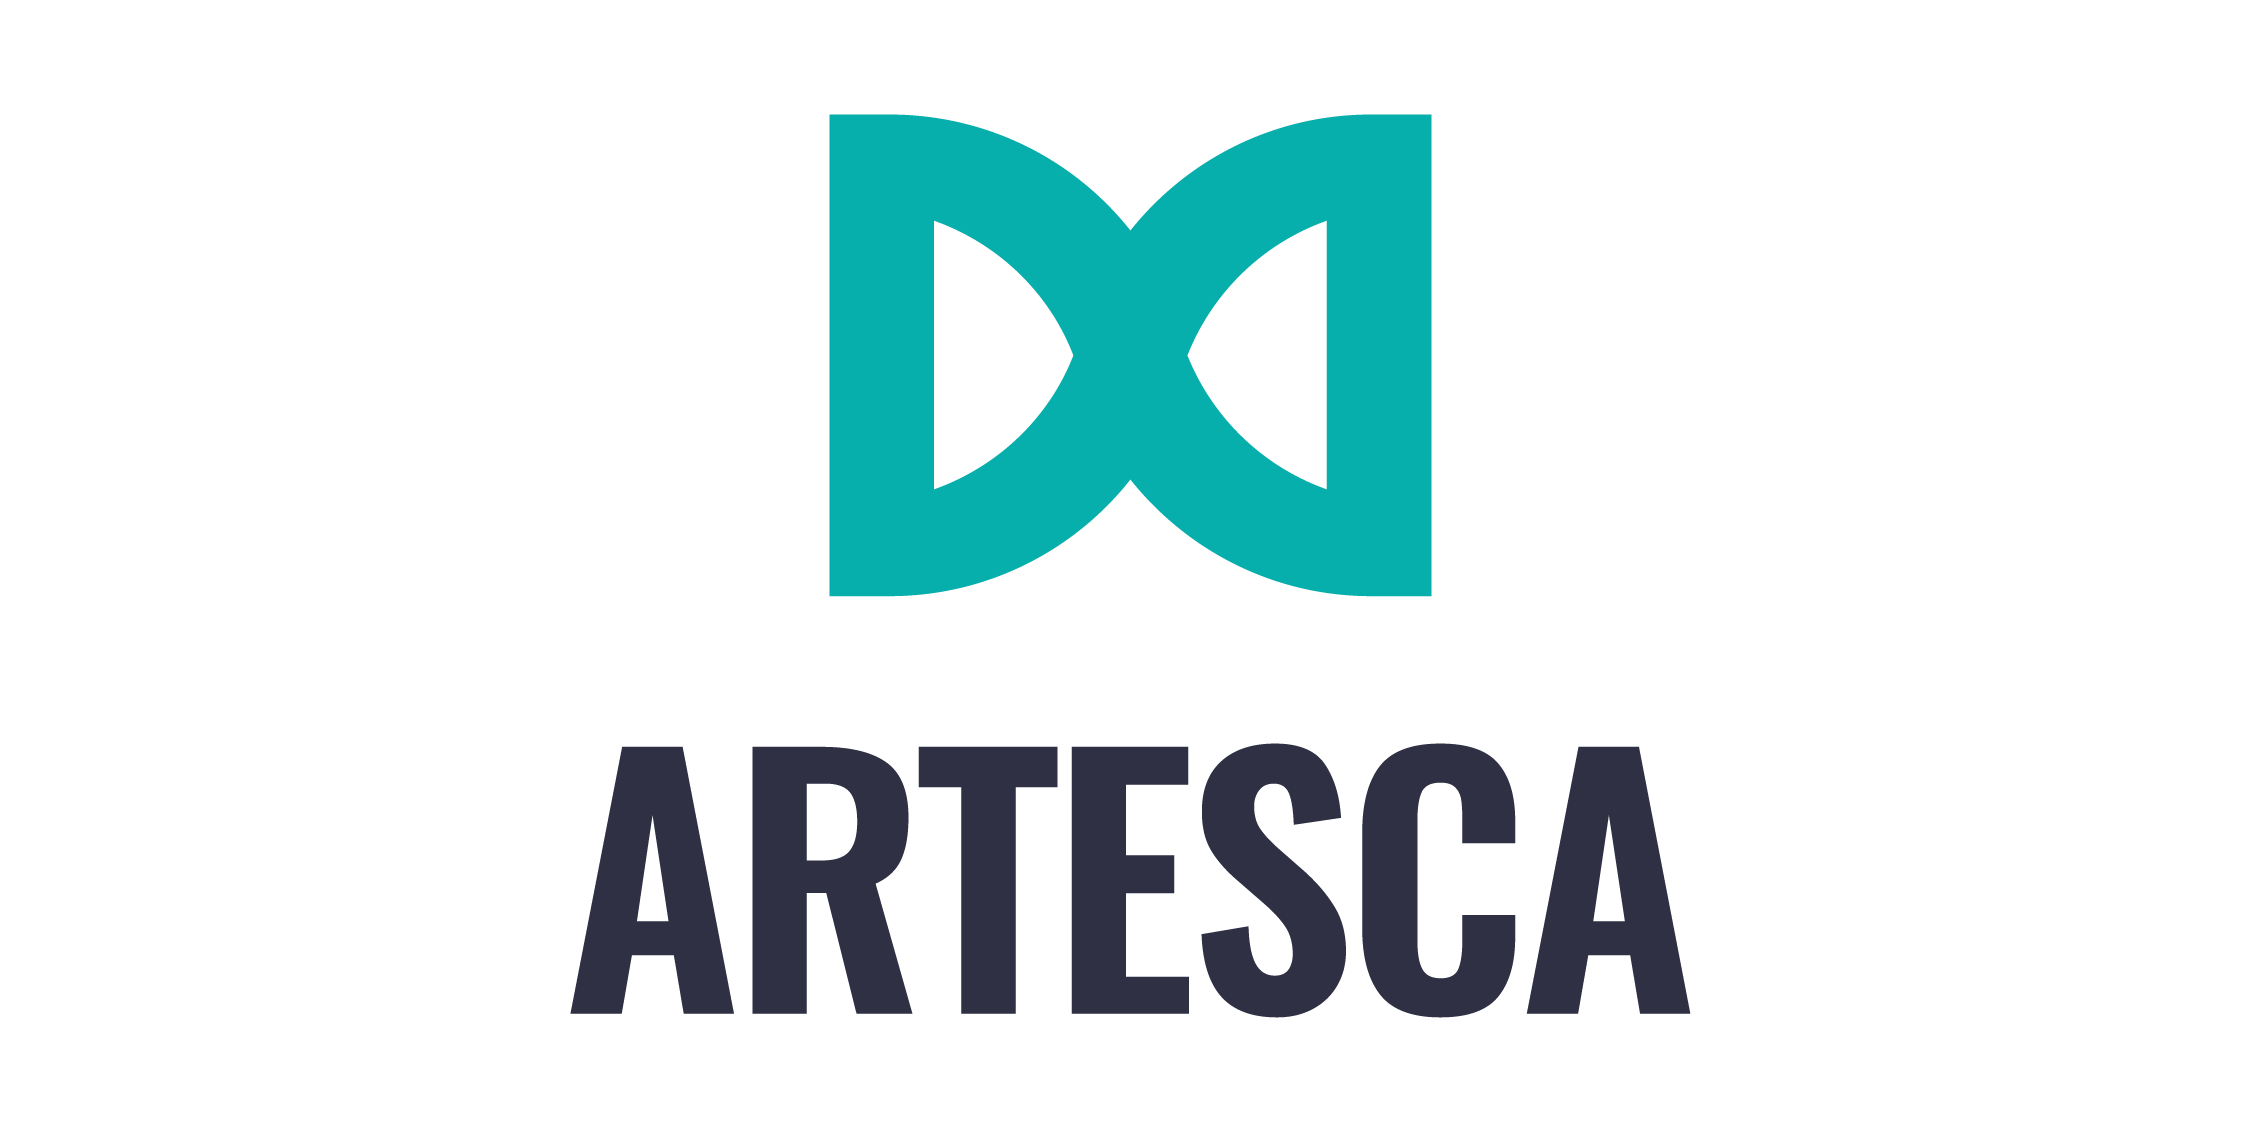 Scality ARTESCA-Only Cloud-native Storage That Is Lightweight and True Enterprise Grade